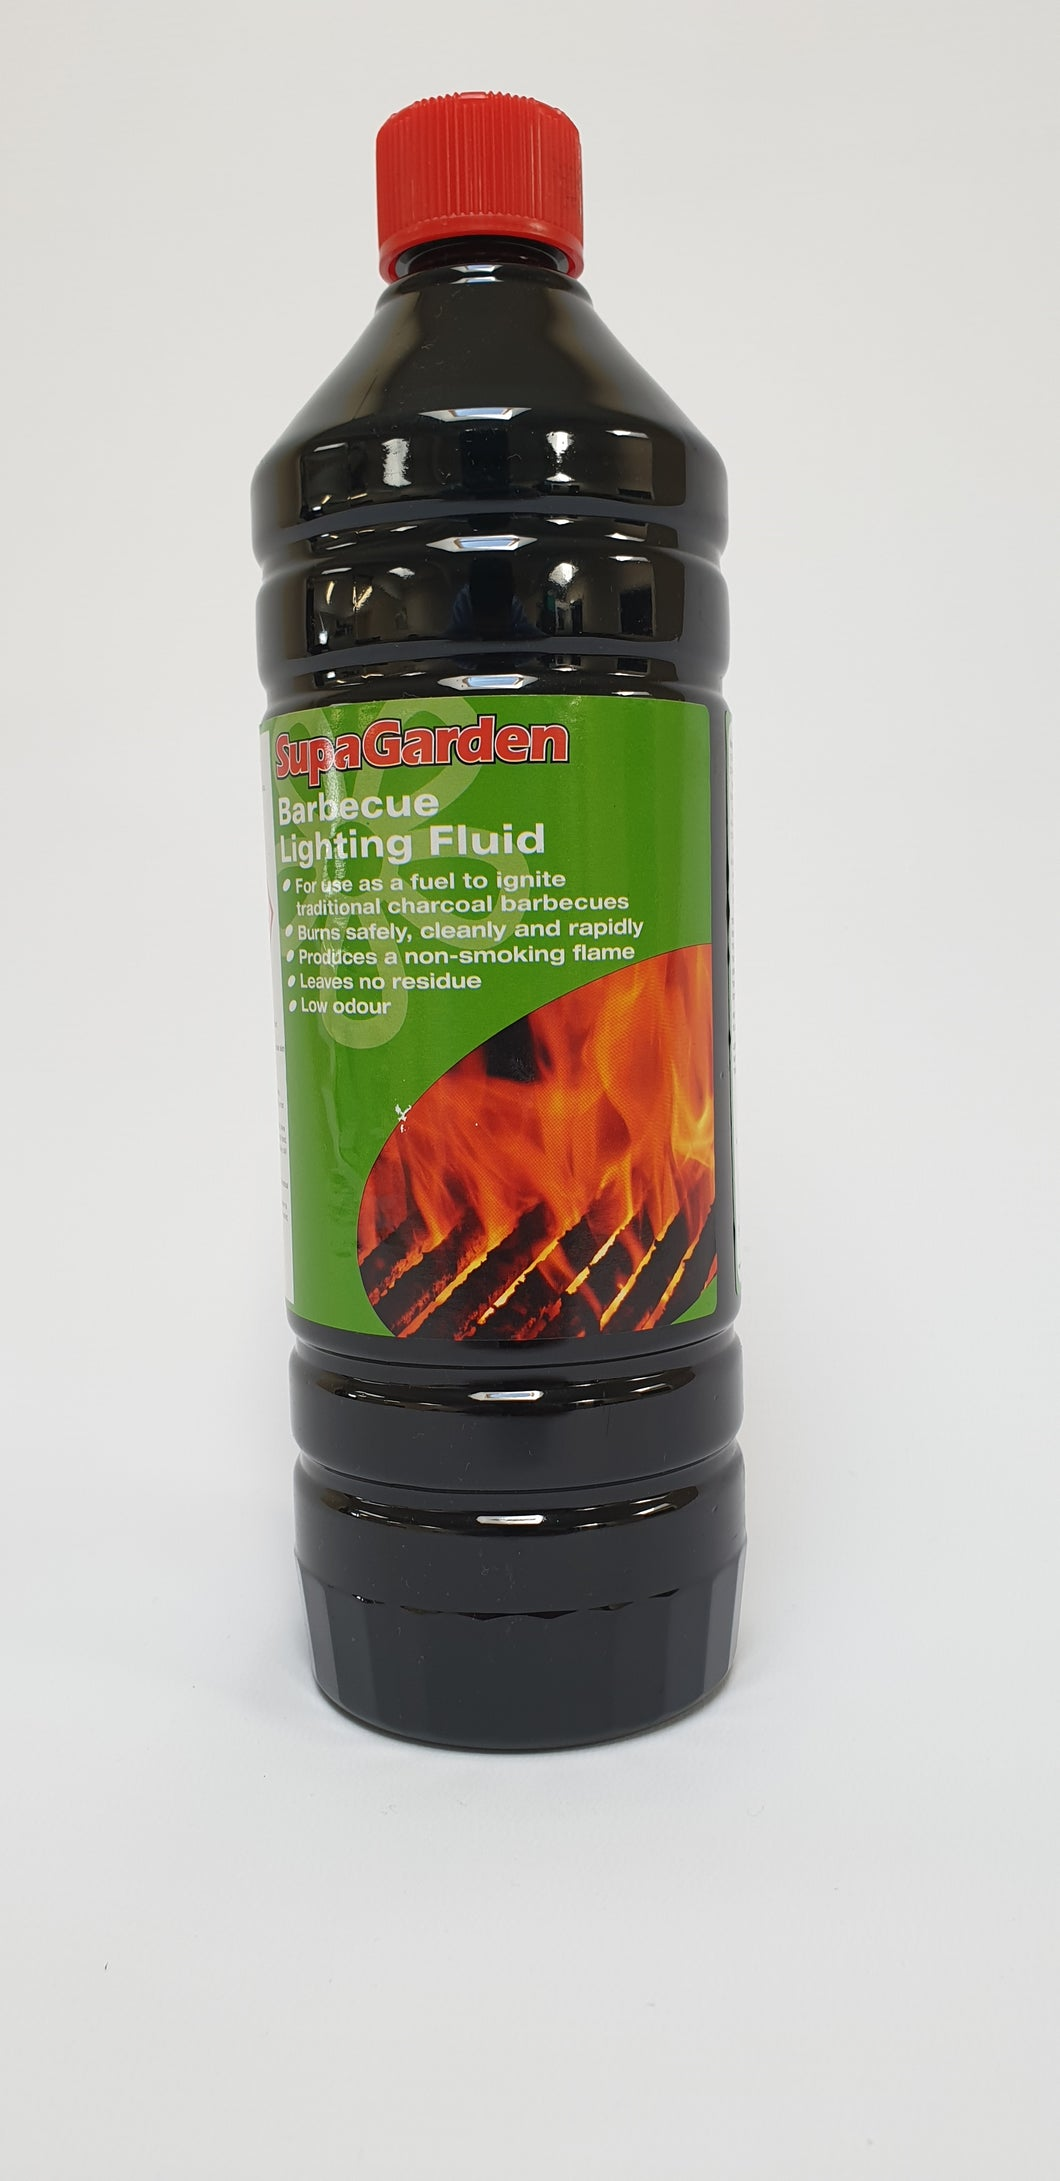 Barbecue Lighting Fluid